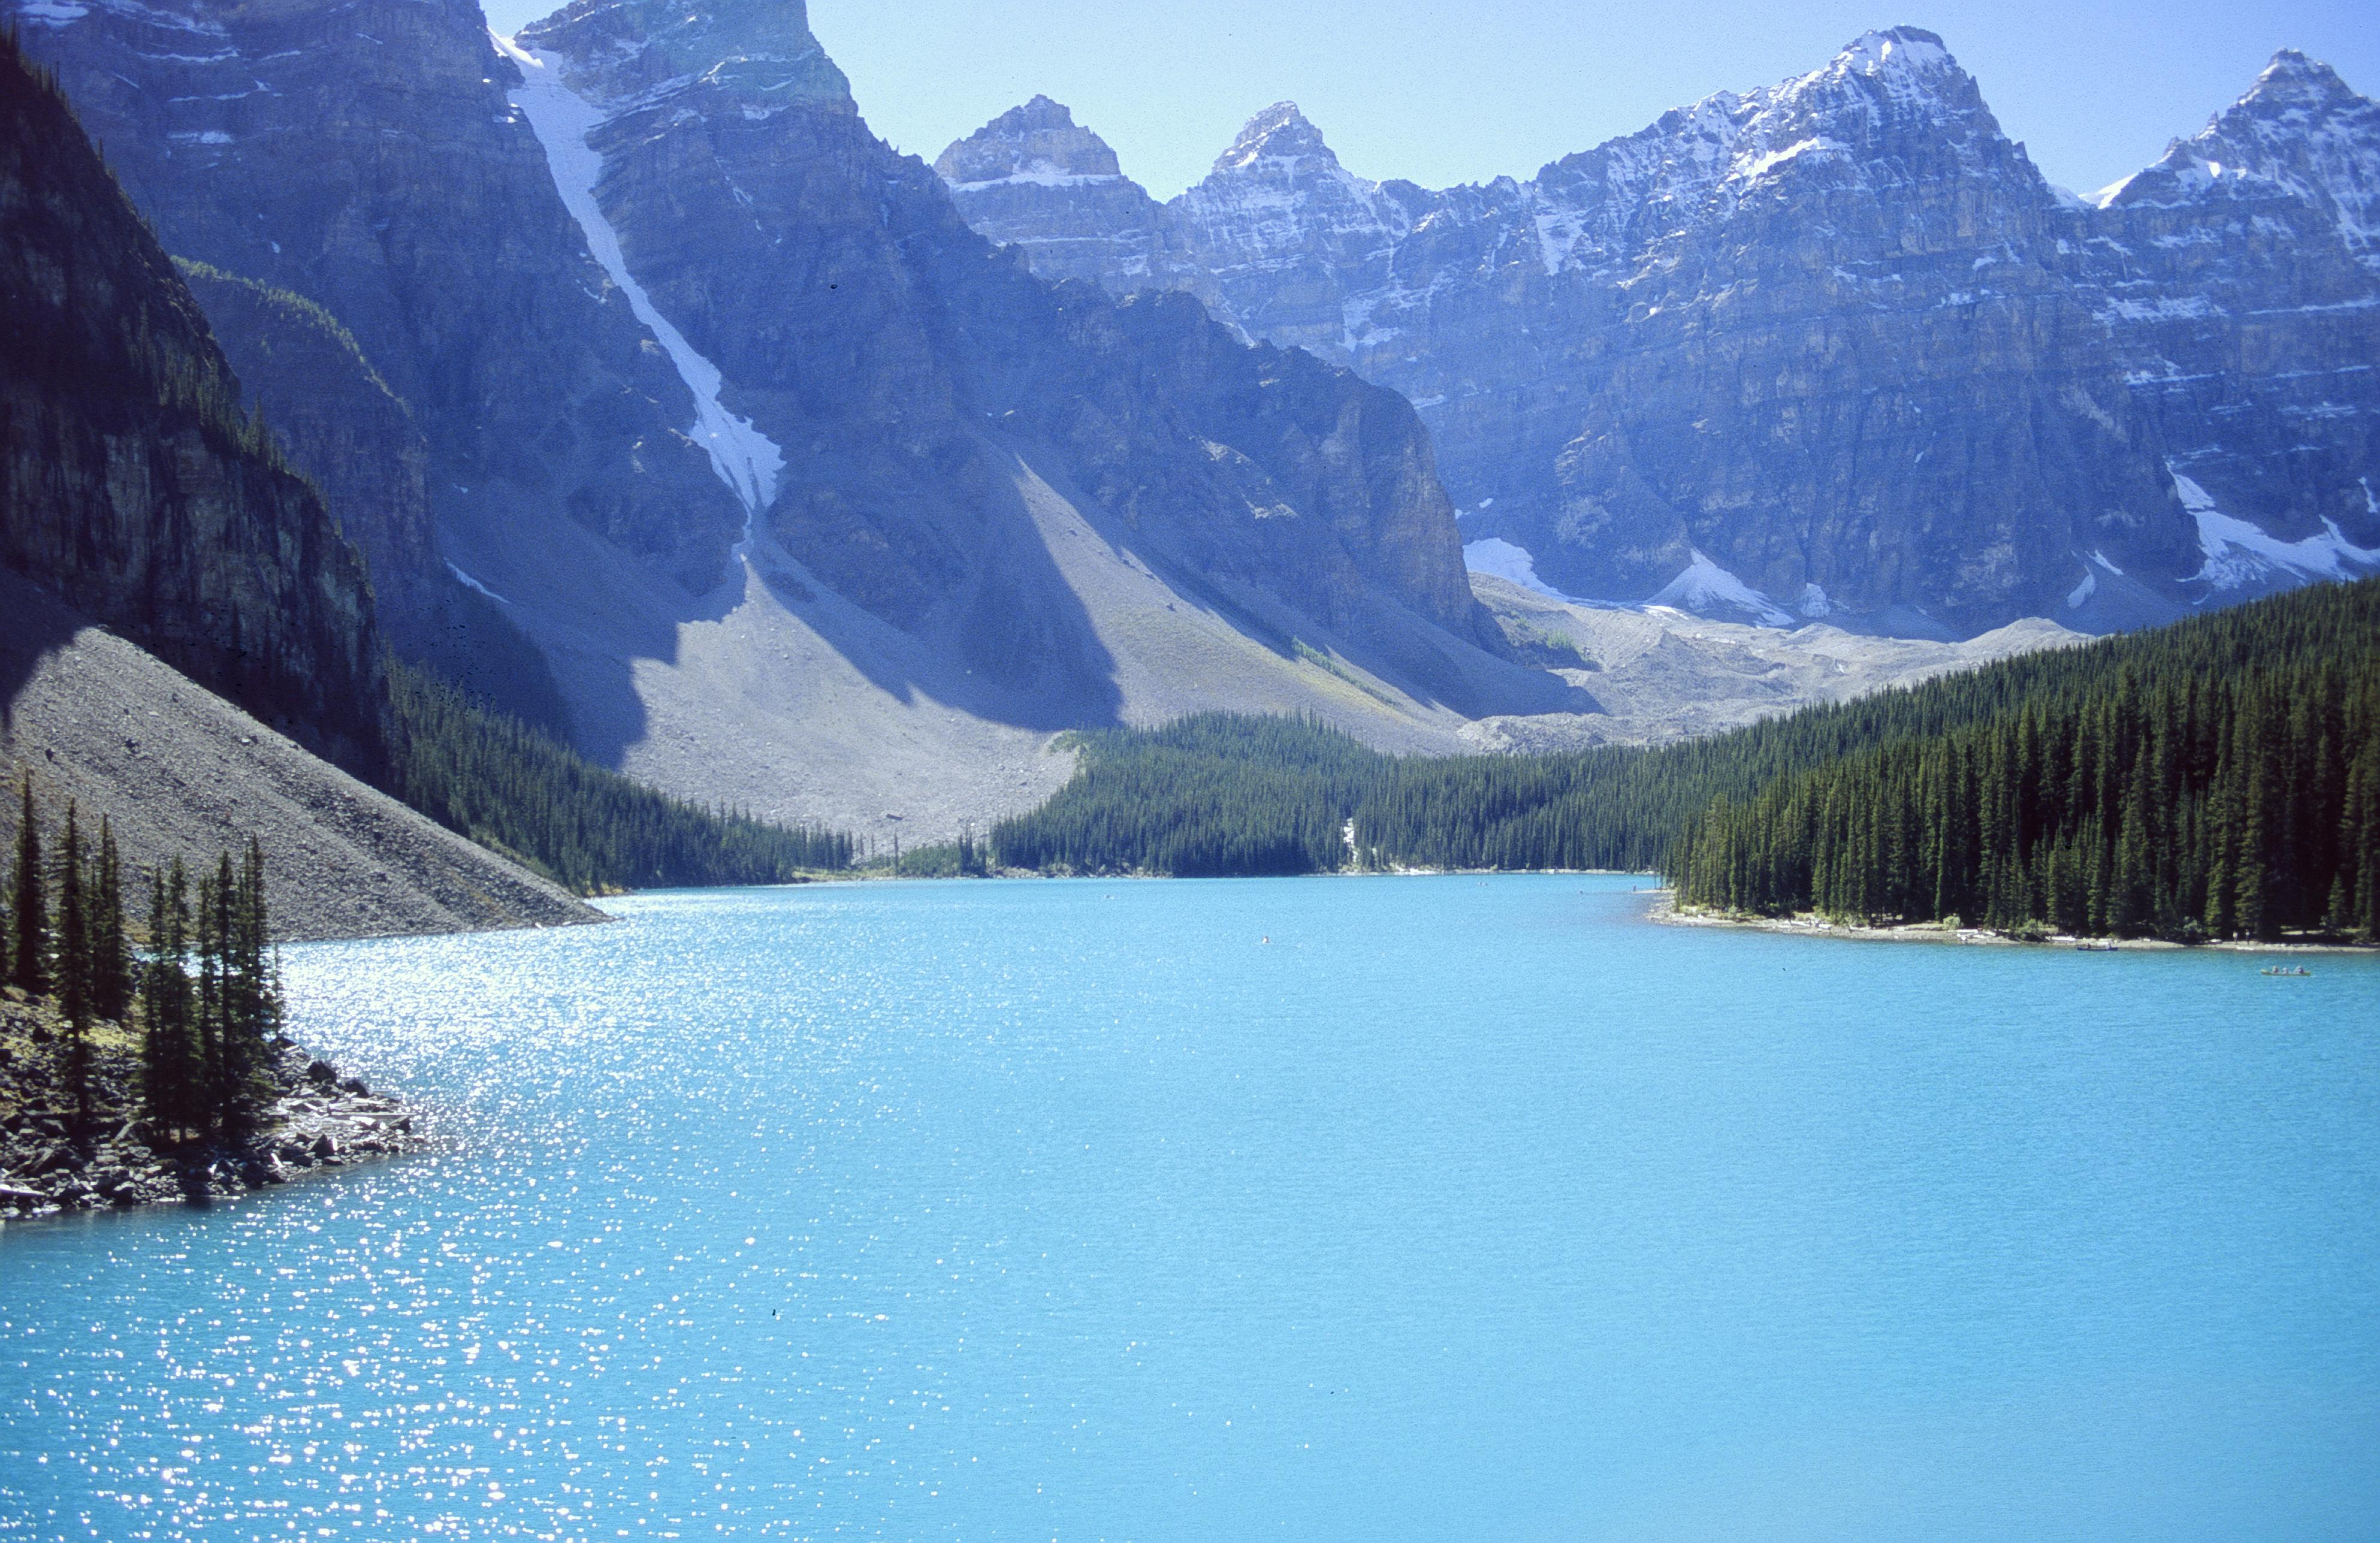 http://upload.wikimedia.org/wikipedia/commons/c/c0/LakeMoraine.jpg